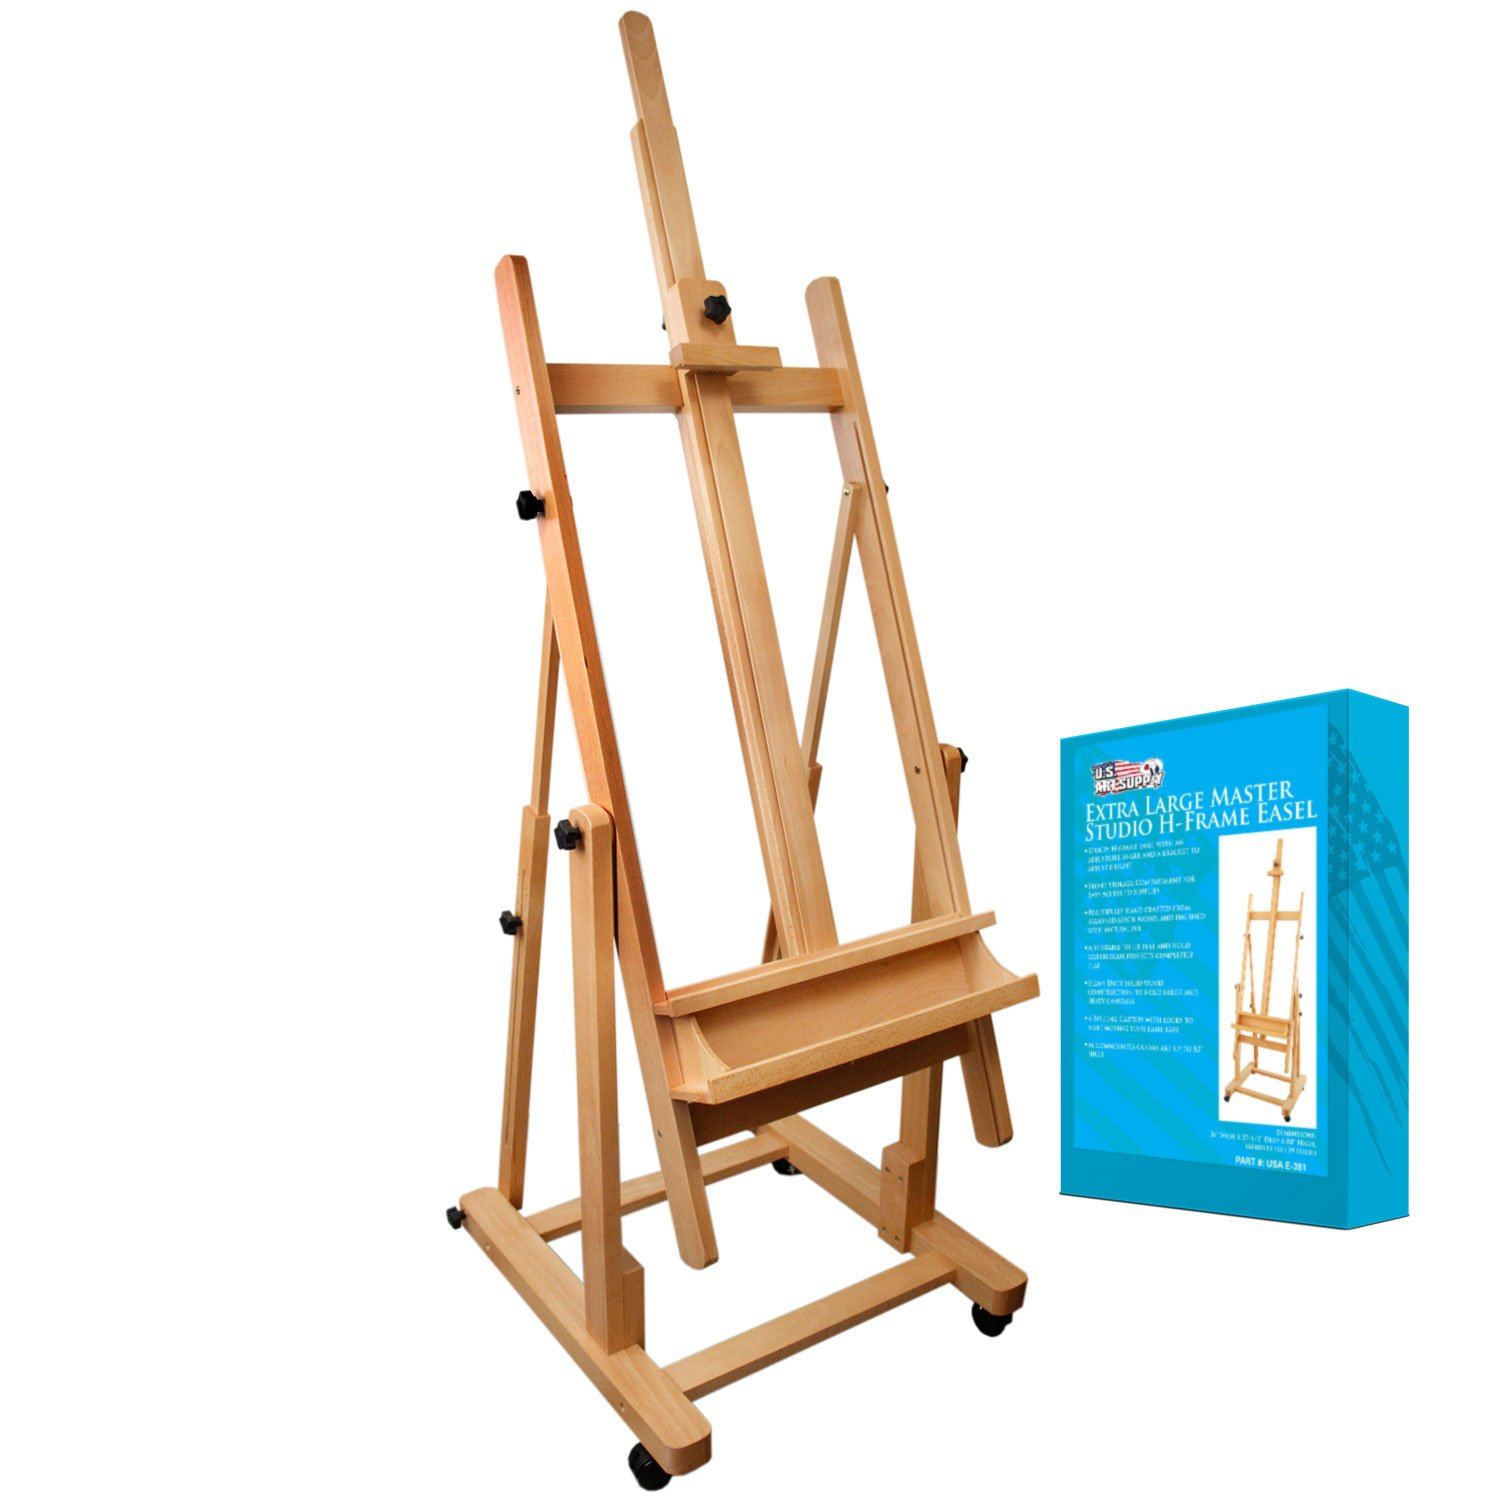 US Art Supply Malibu Extra Large H-Frame Deluxe Adjustable Wood Studio Easel with Tilt and Caster Wheels by US Art Supply